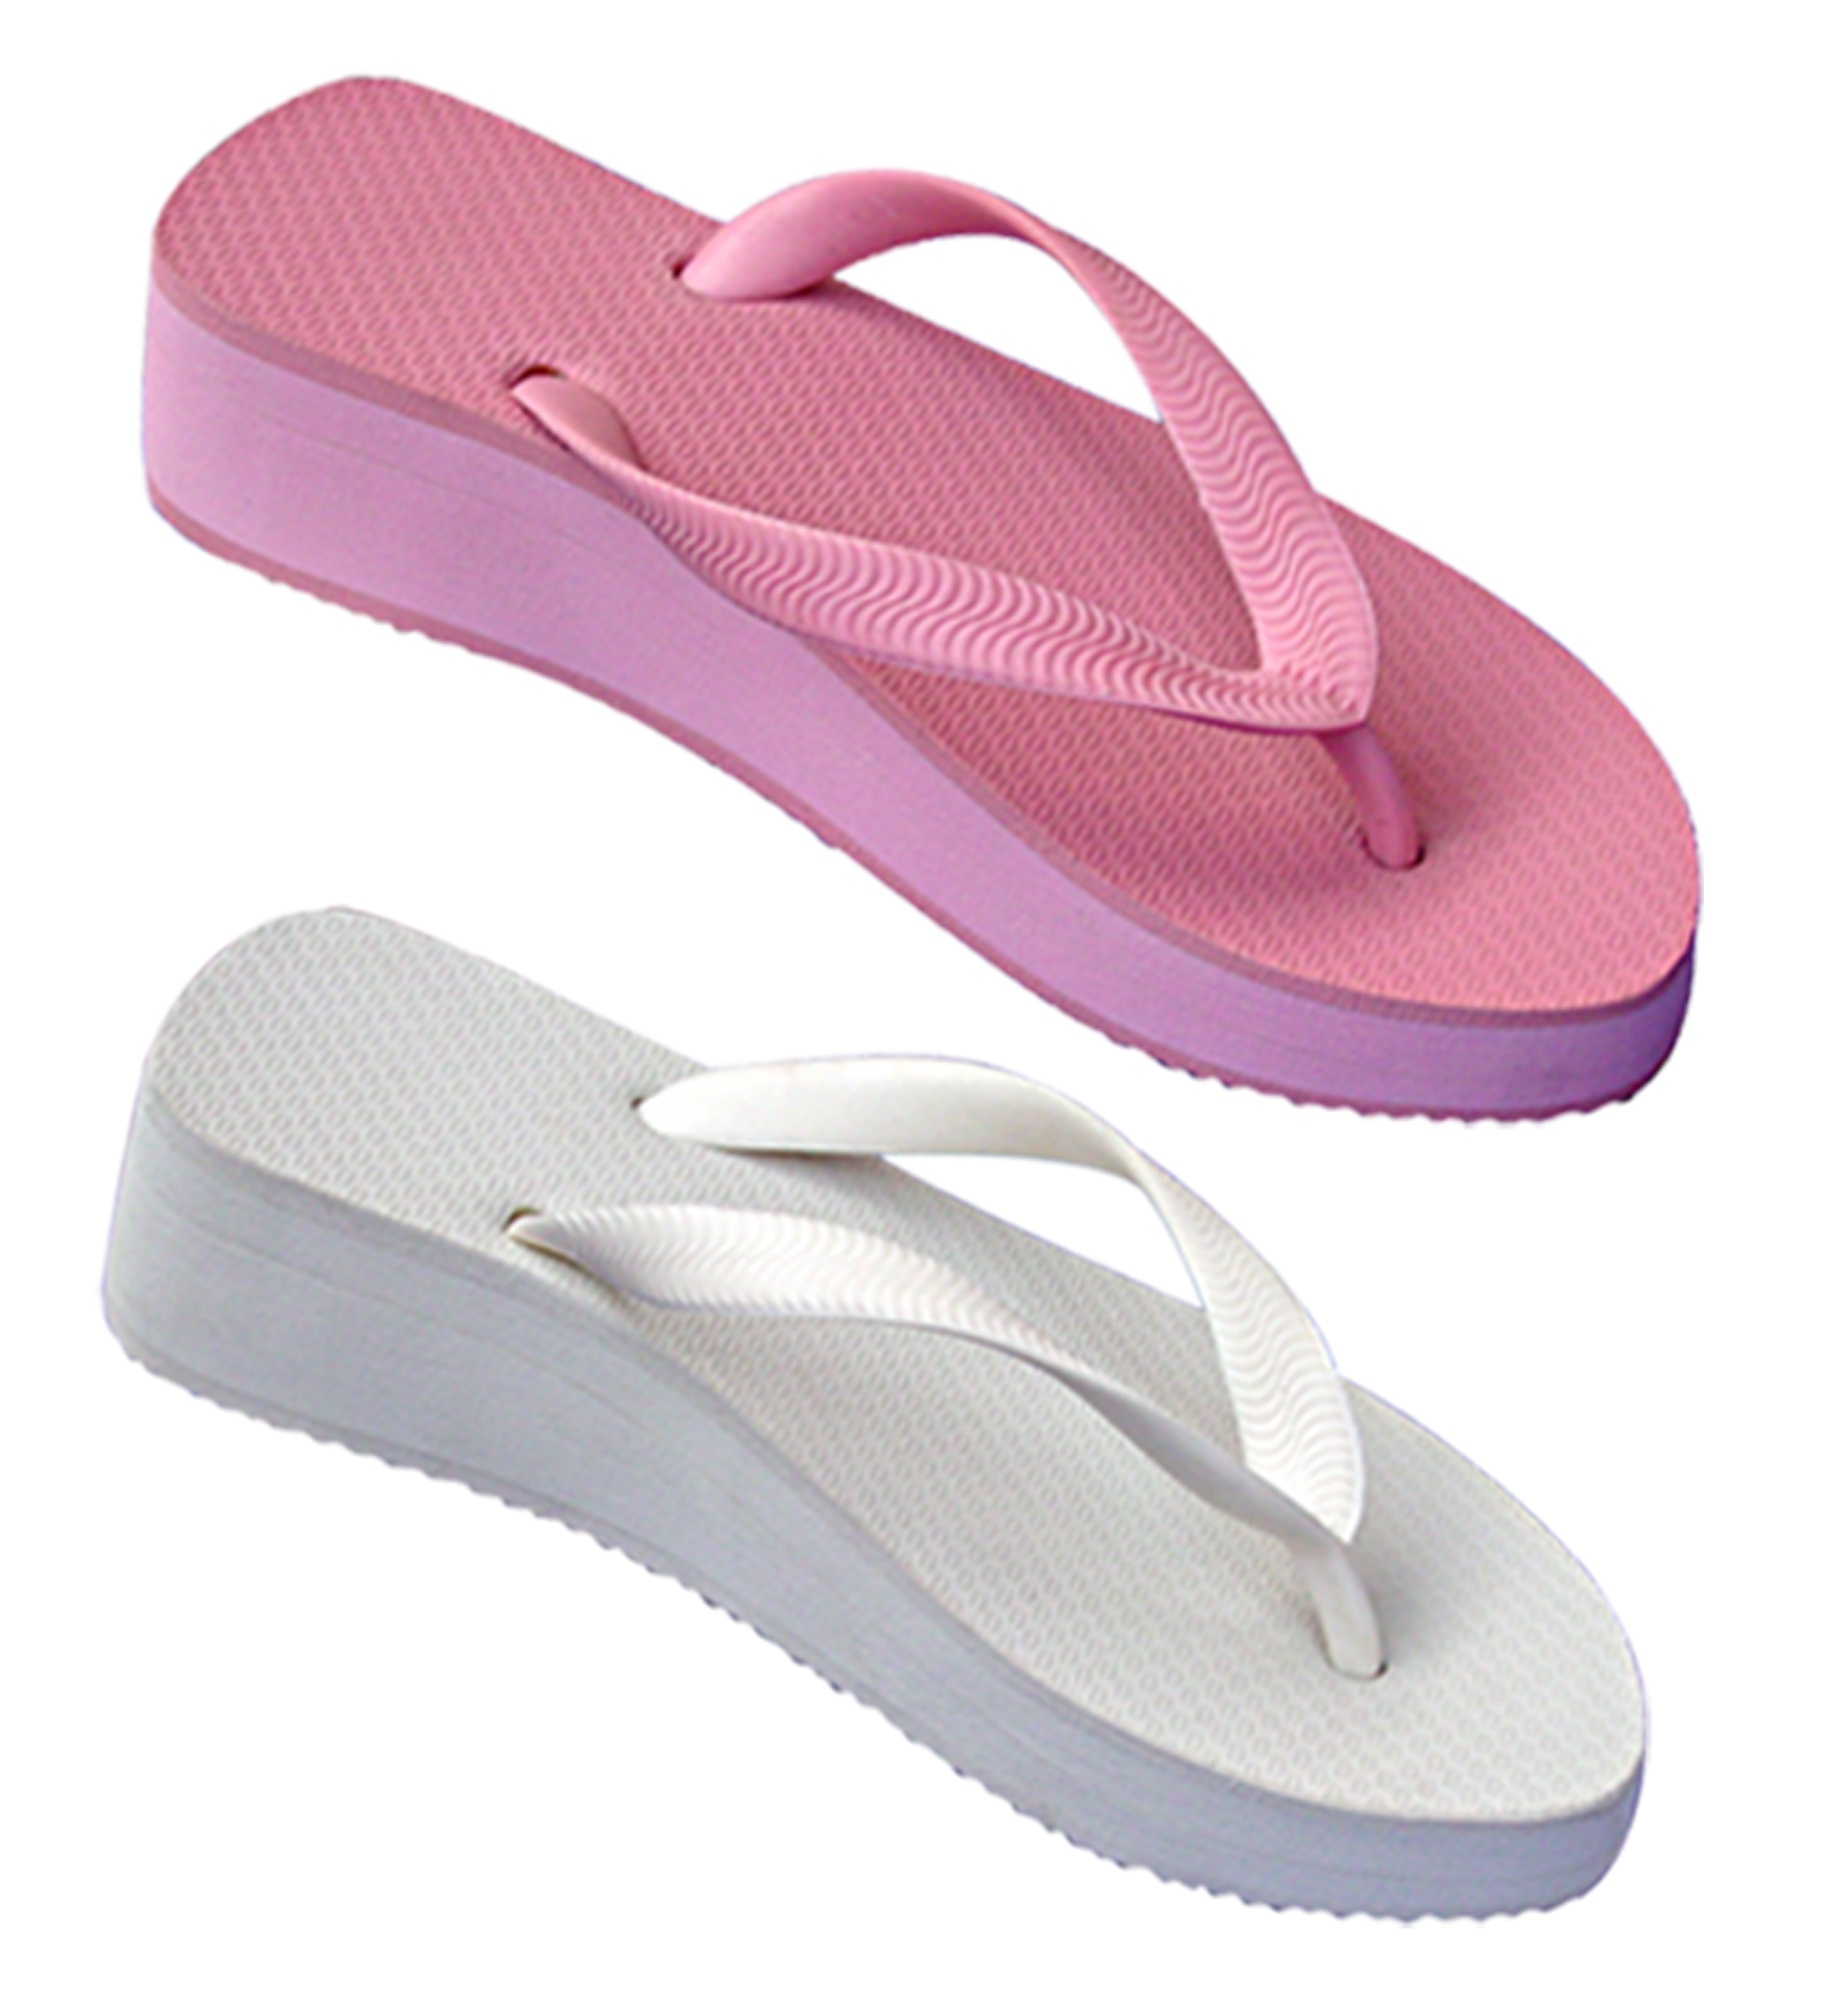 Flip Flops Sale: Save Up to 50% Off! Shop learn-islam.gq's huge selection of Flip Flops - Over styles available. FREE Shipping & Exchanges, and a % price guarantee!